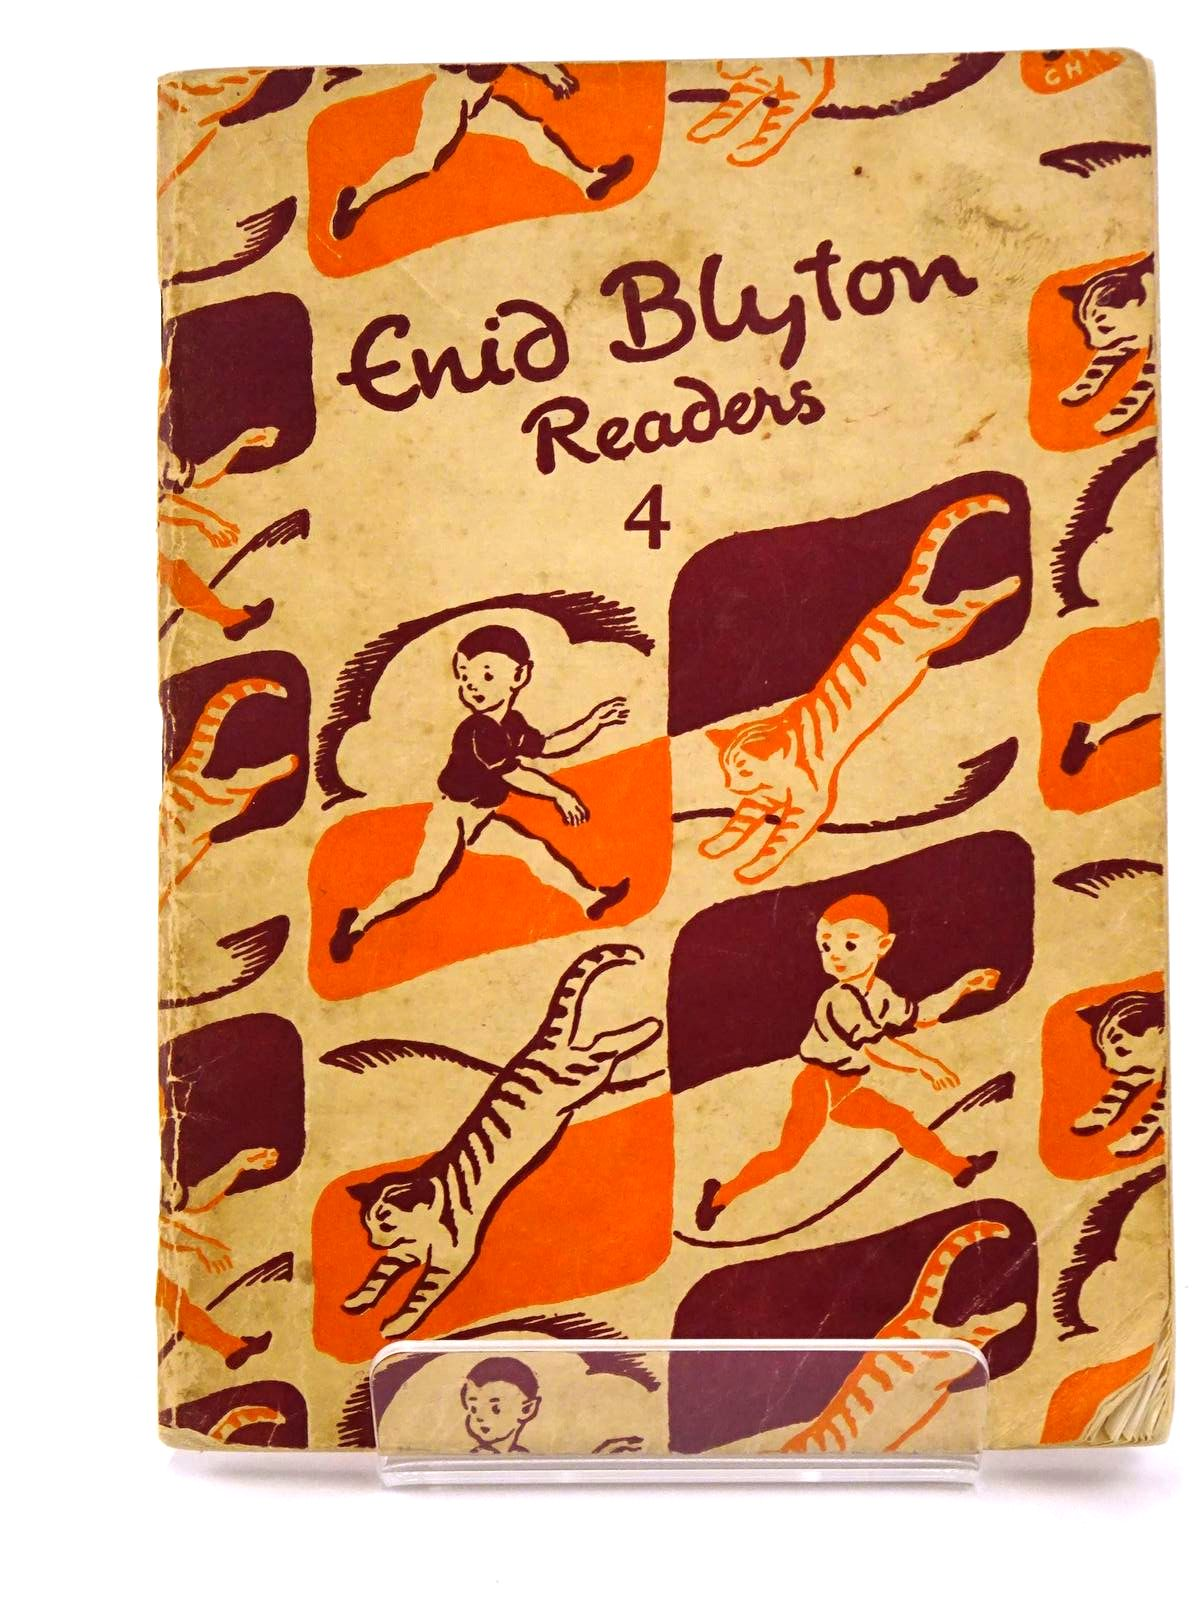 Photo of ENID BLYTON READERS 4 written by Blyton, Enid illustrated by Soper, Eileen published by Macmillan & Co. Ltd. (STOCK CODE: 1318207)  for sale by Stella & Rose's Books